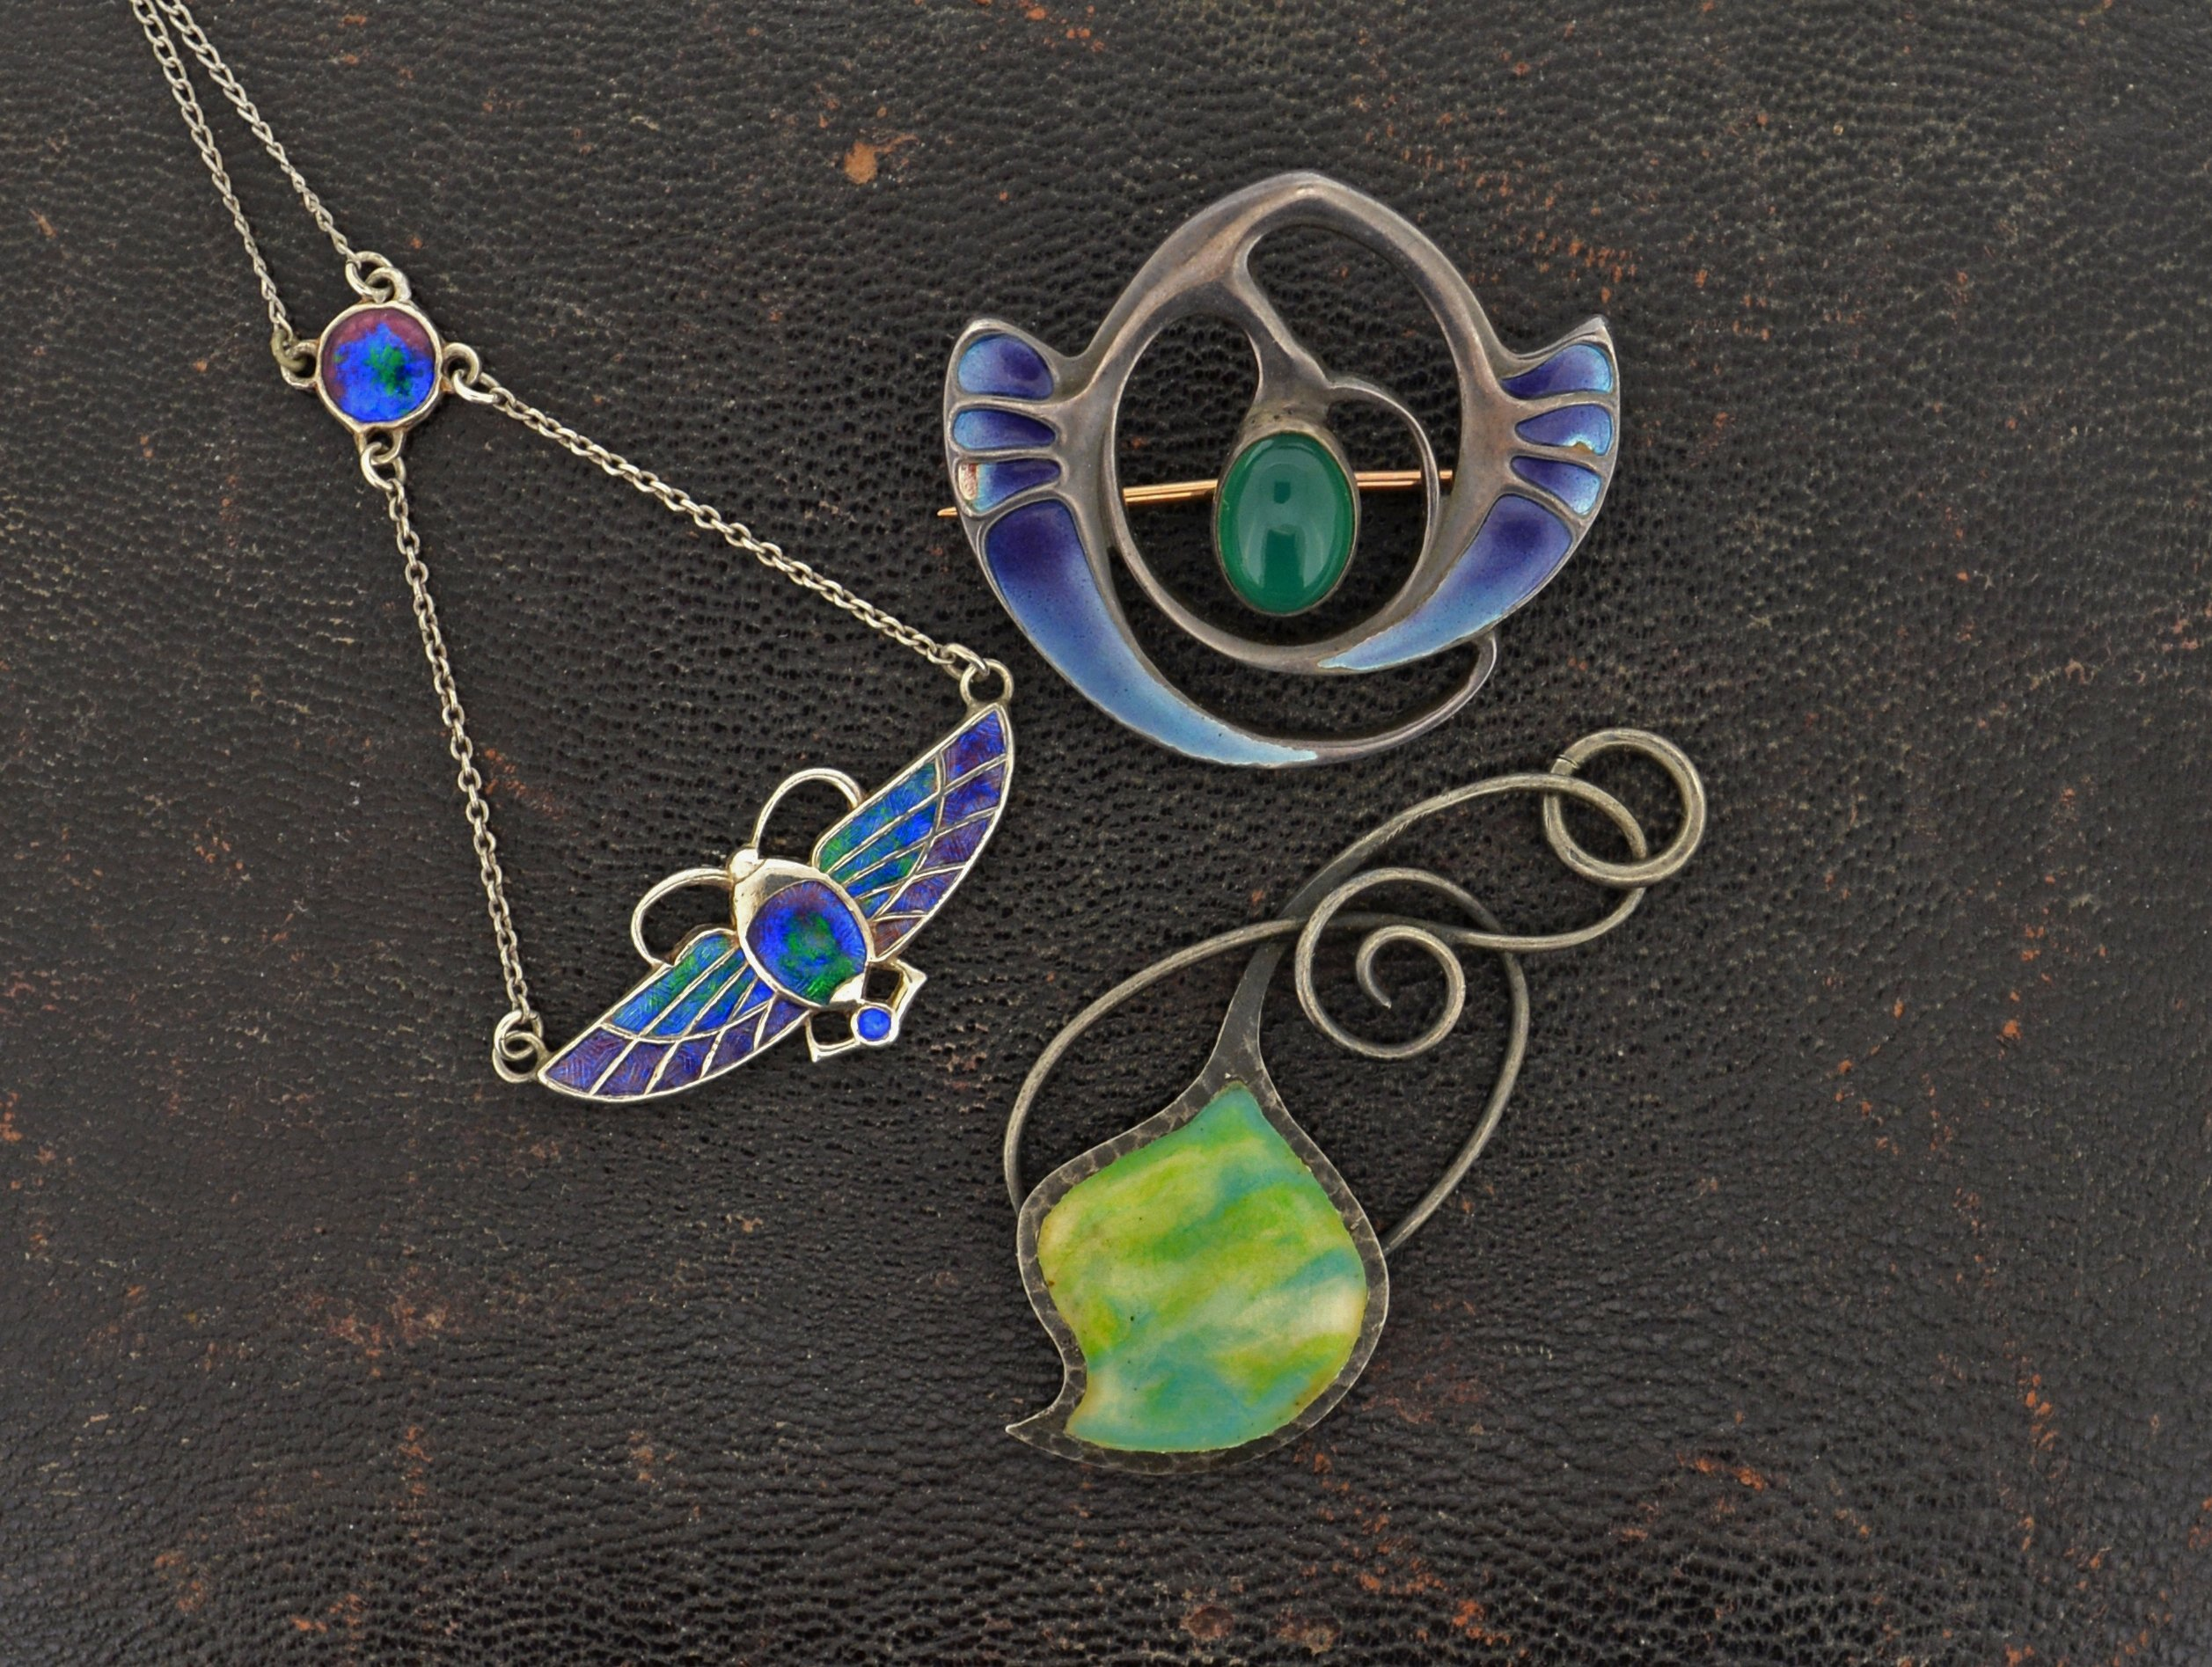 Buy Rare Art Nouveau Jewelry at Auction